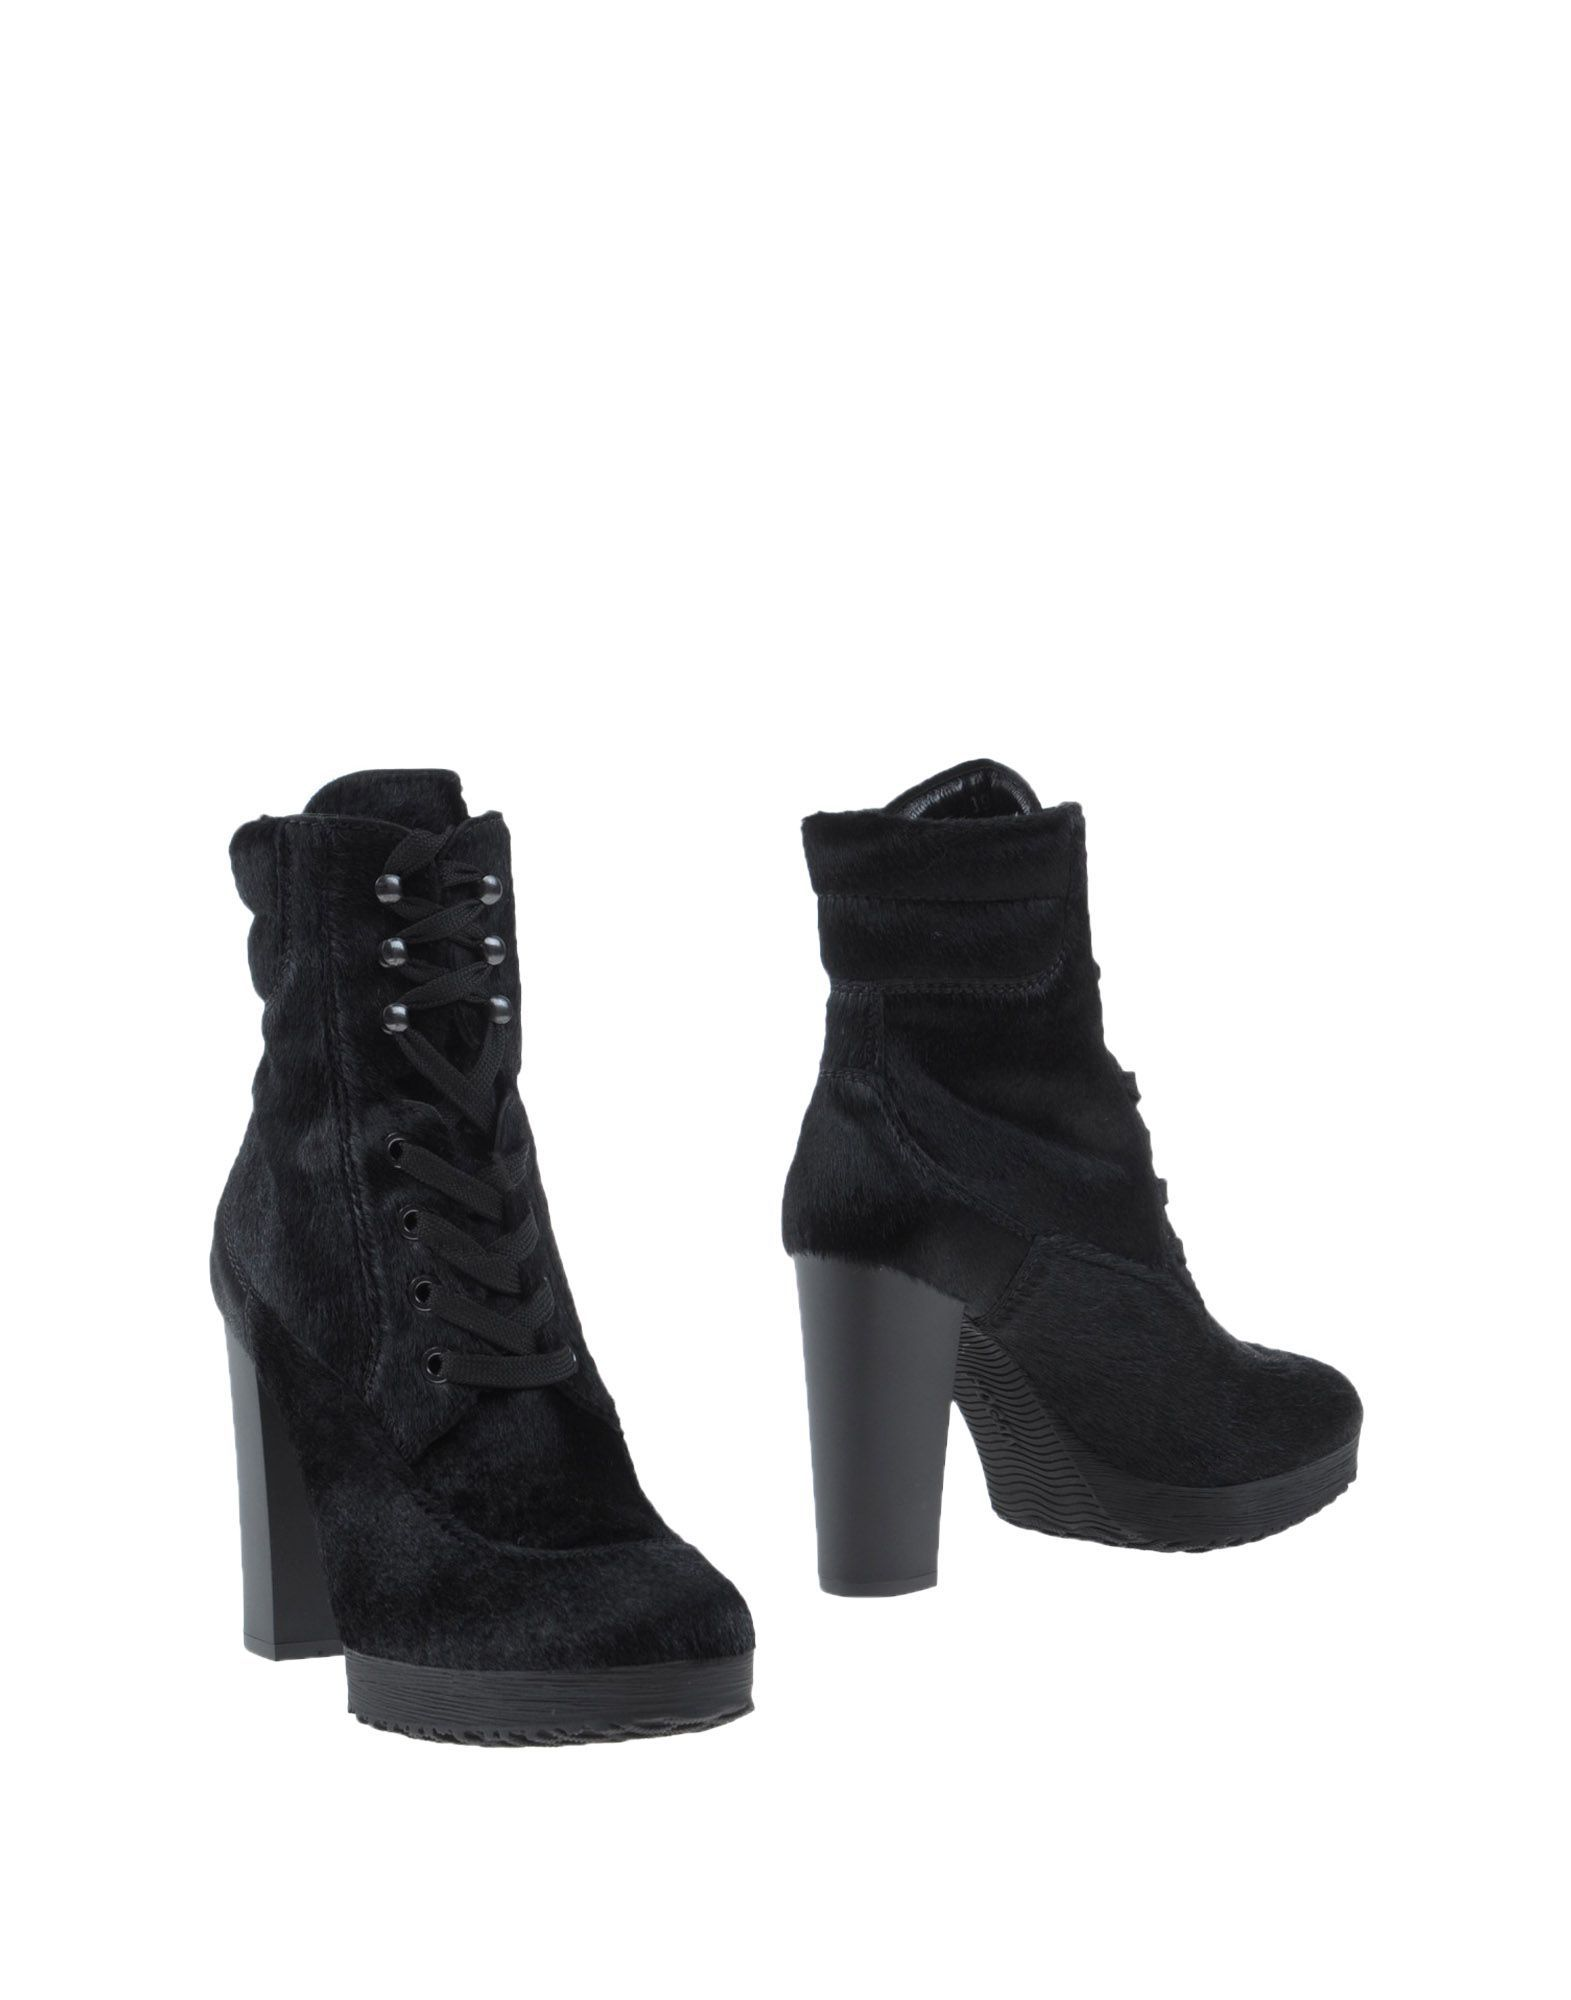 Hogan Black Leather Lace Up Ankle Boots